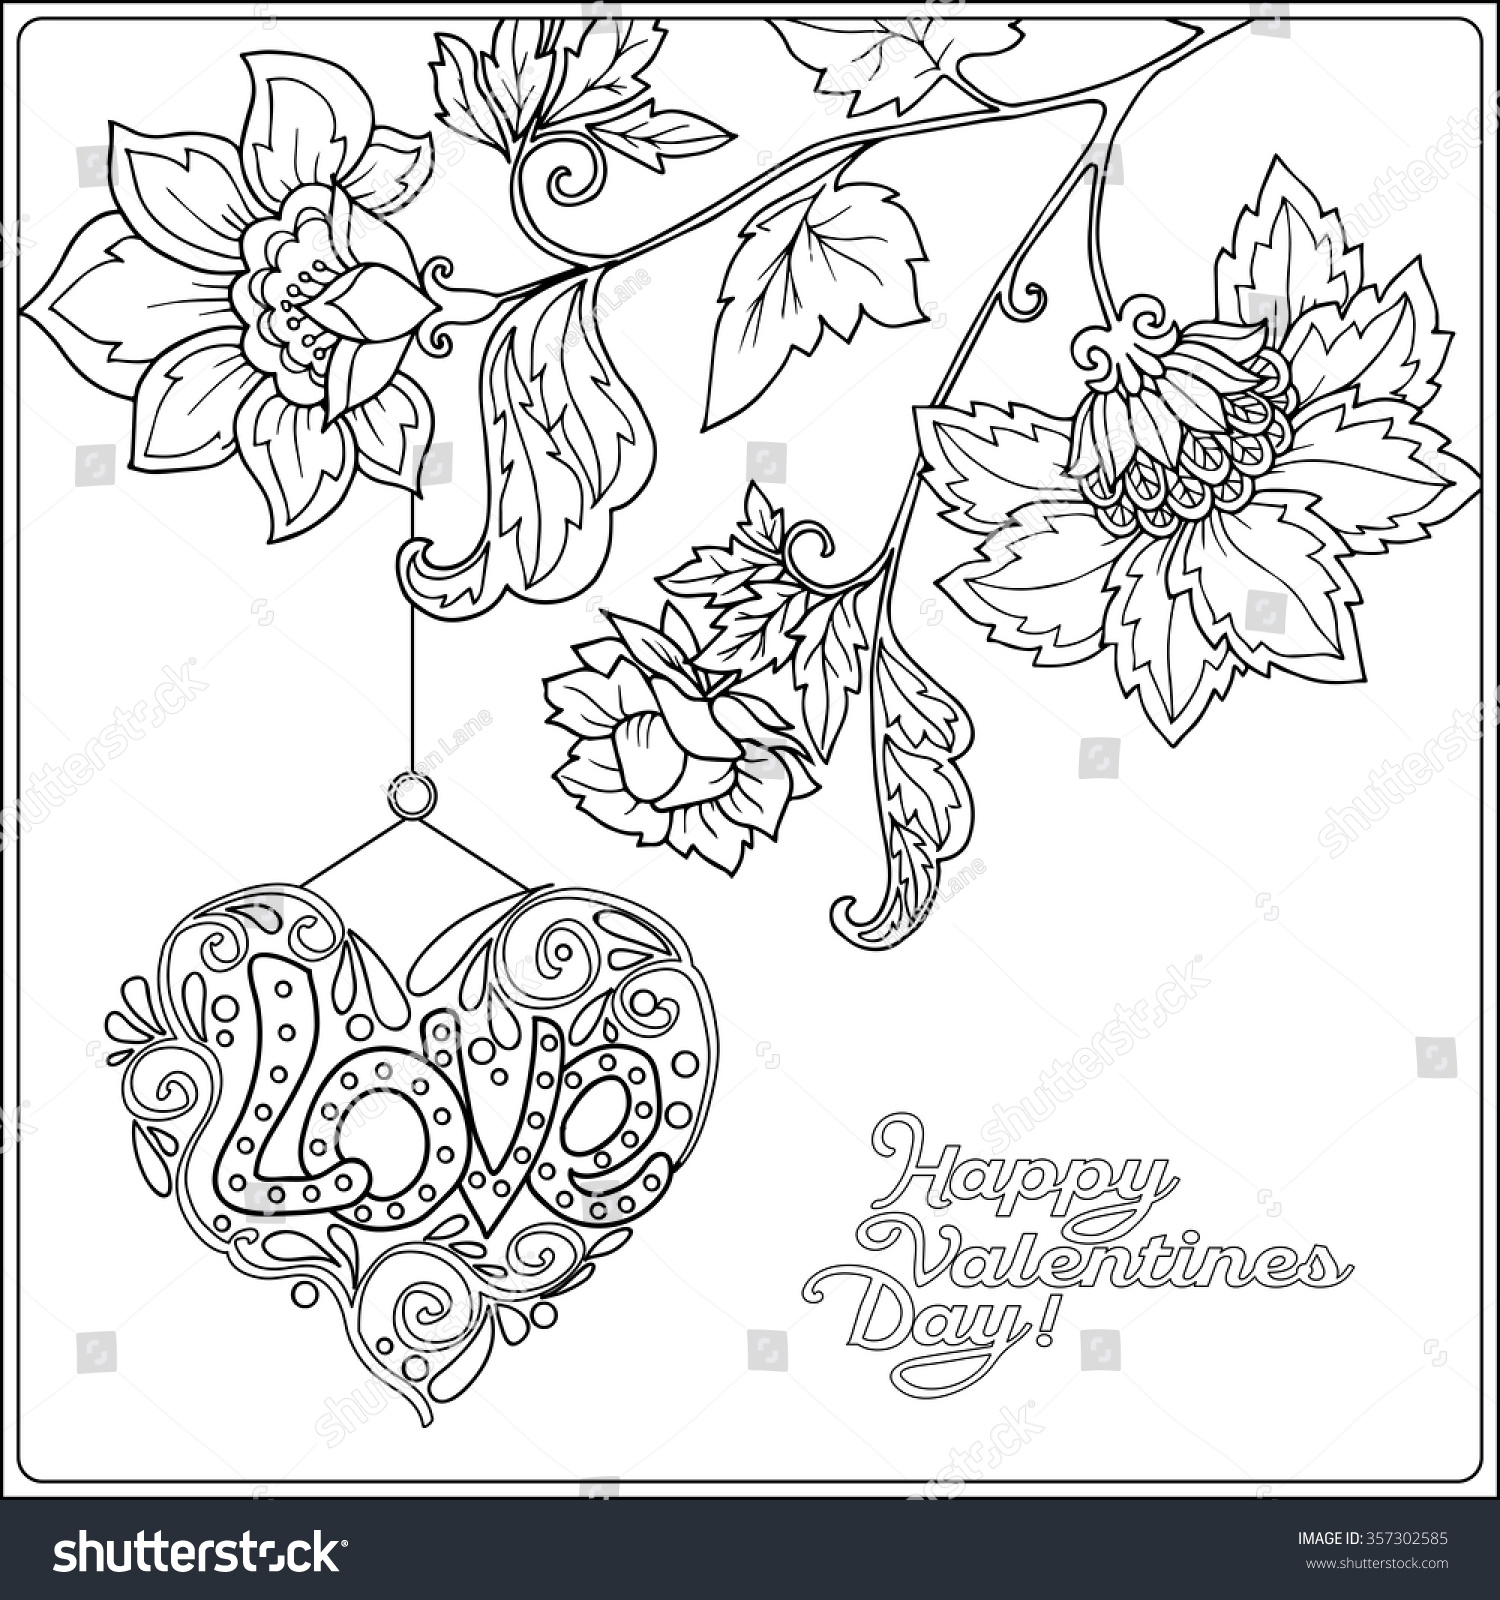 Coloring pages for adults valentines day - Happy Valentine Day Card With Decorative Love Heart And Flowers Coloring Book For Adult And